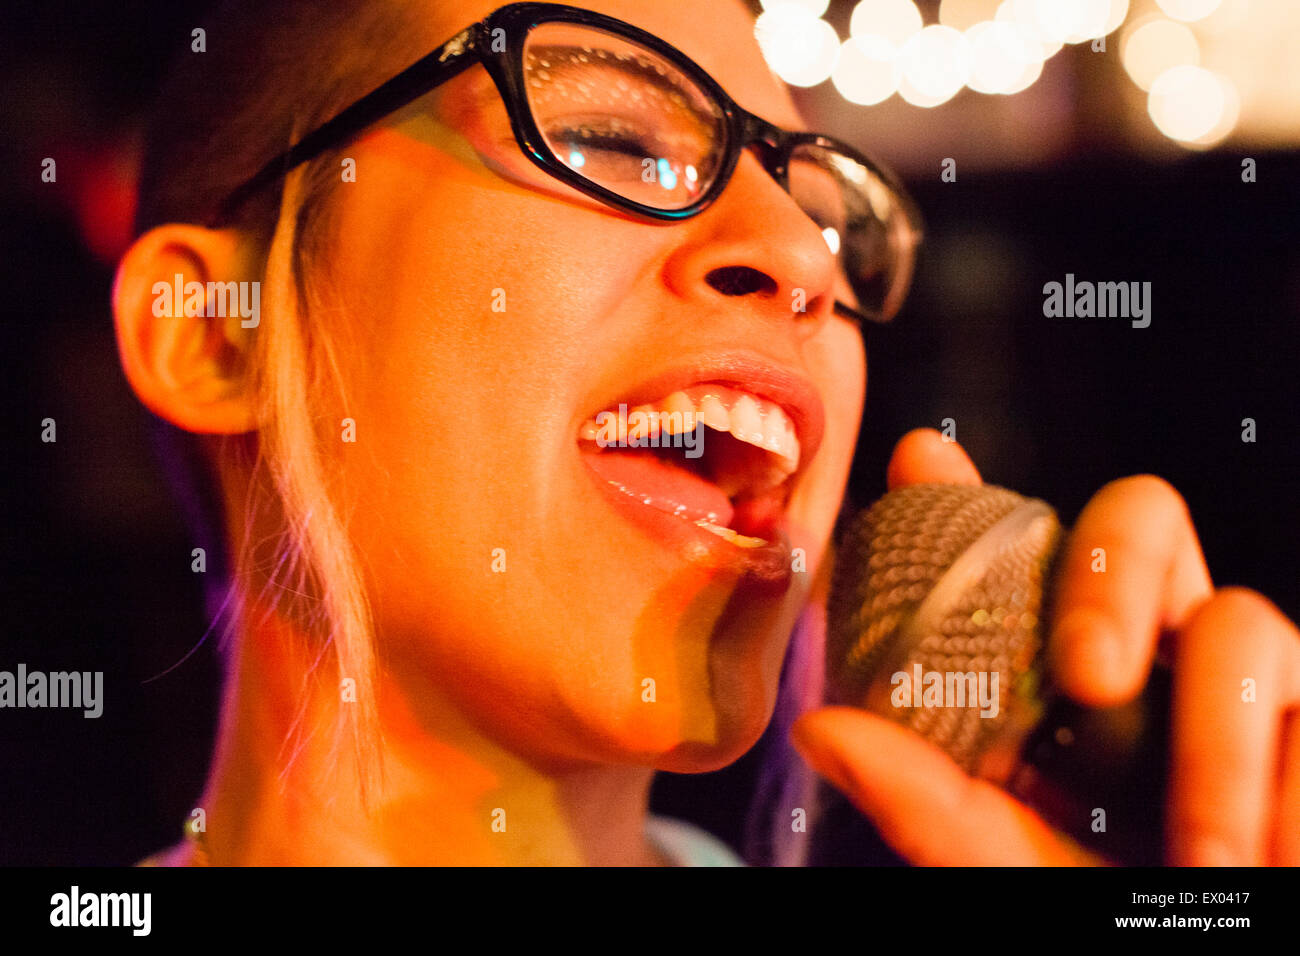 Punk girl singing into microphone, close-up - Stock Image